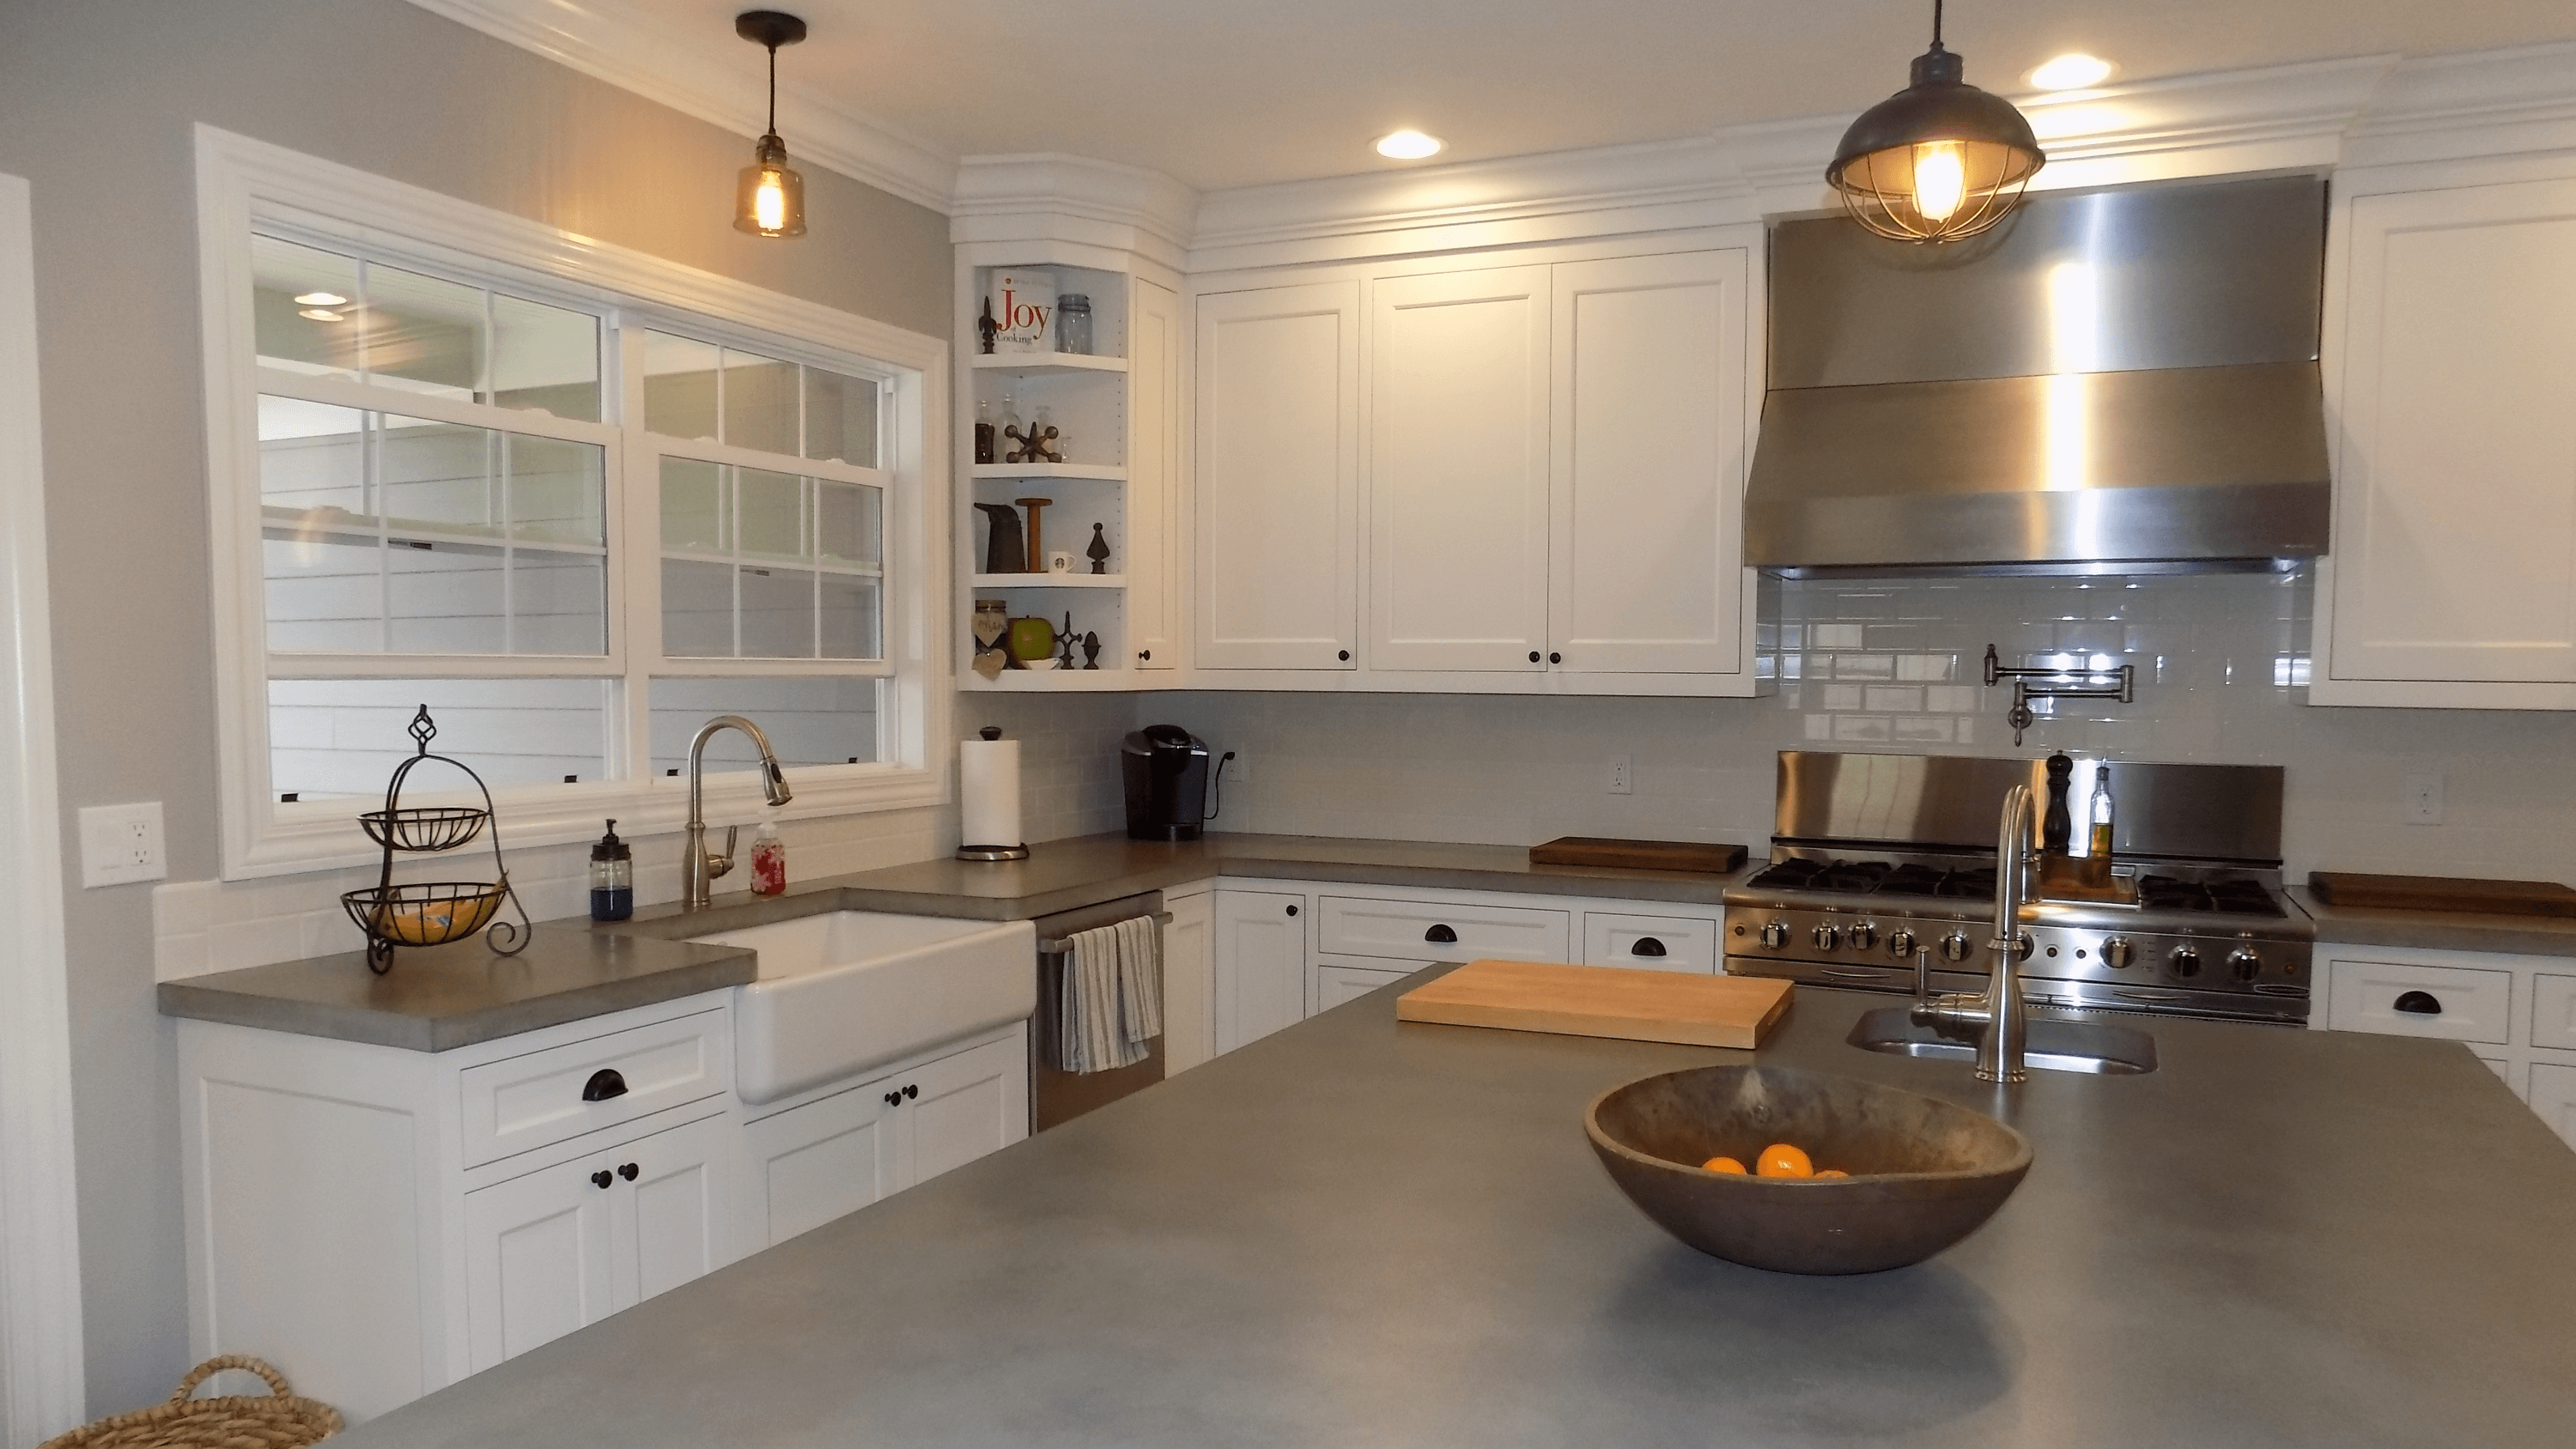 gourmet kitchen, concrete counter tops